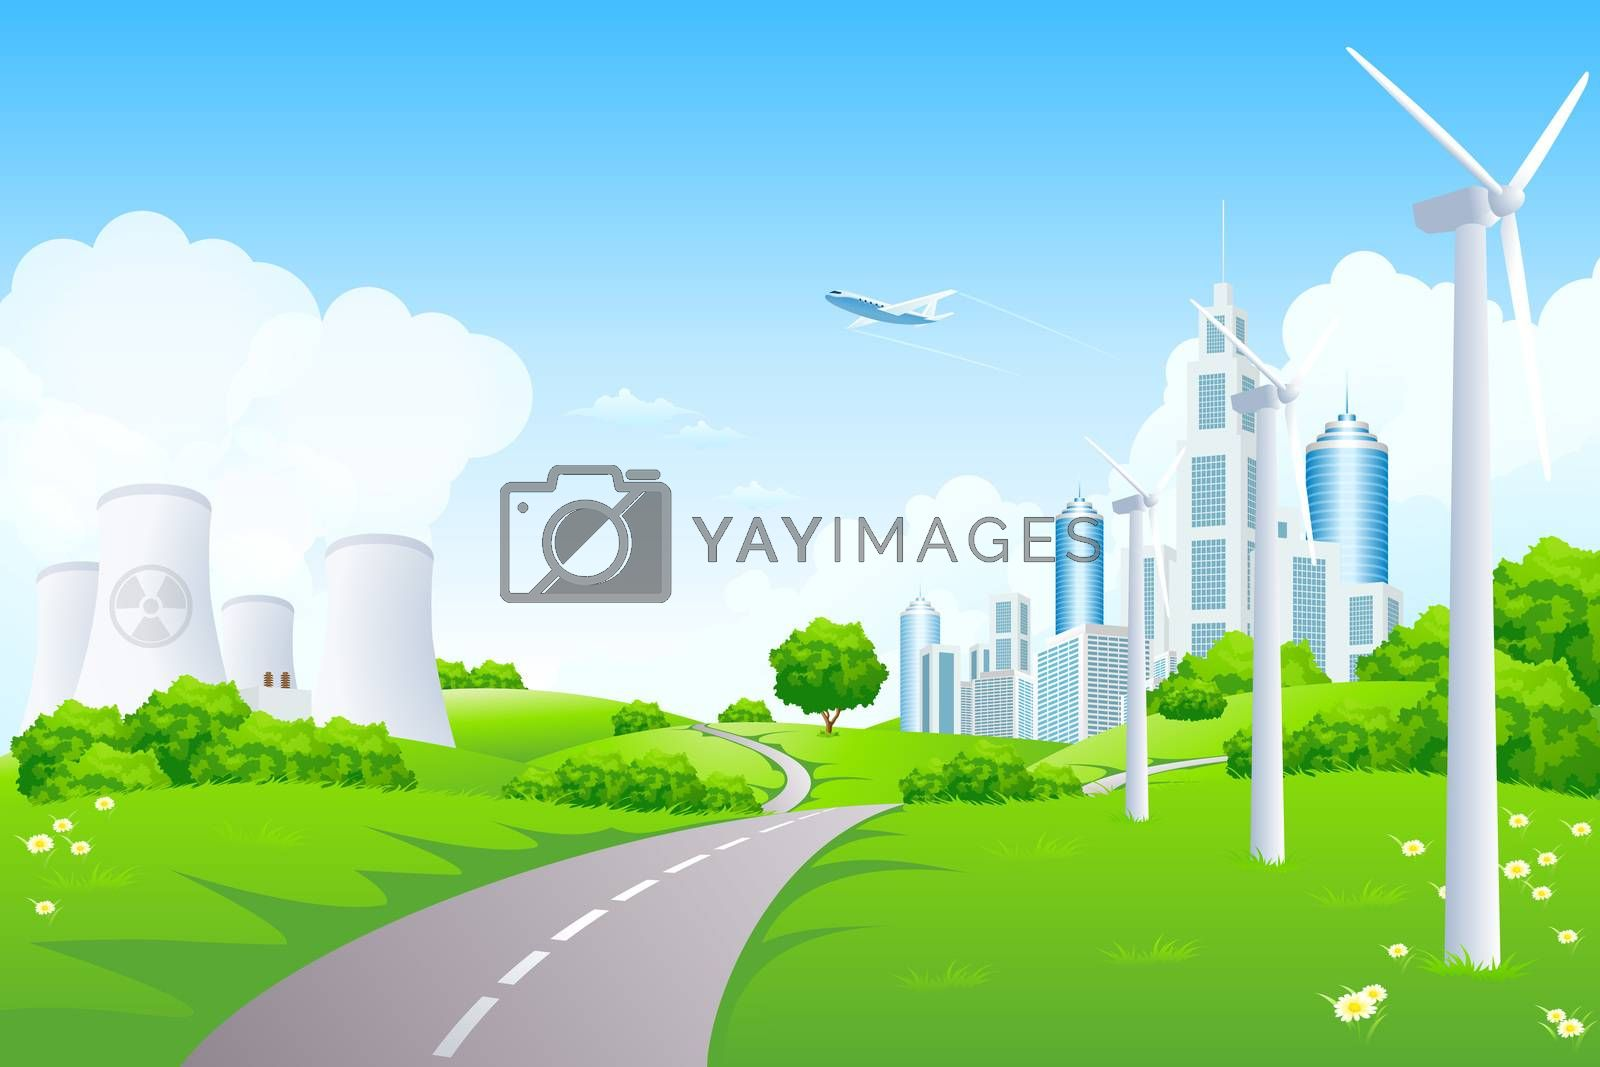 Green Landscape with City Windmills and Nuclear Power Plant by WaD